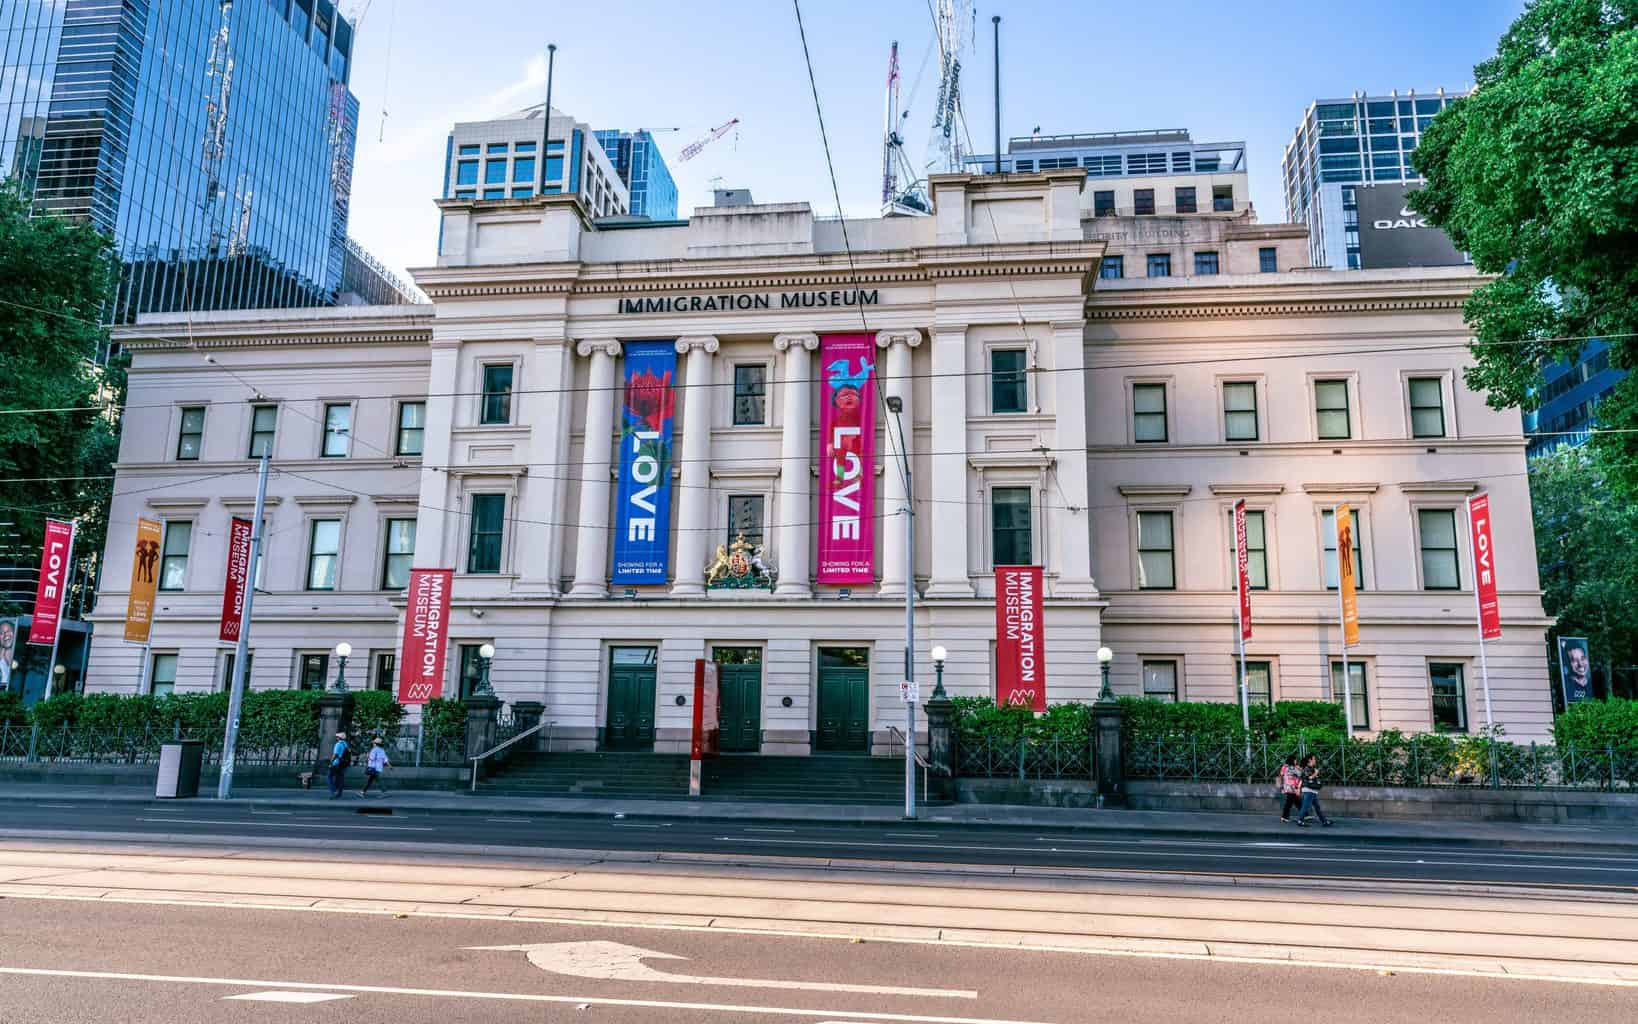 A view of the exterior of the Immigration museum in the old customs house building in Melbourne, Victoria Australia.